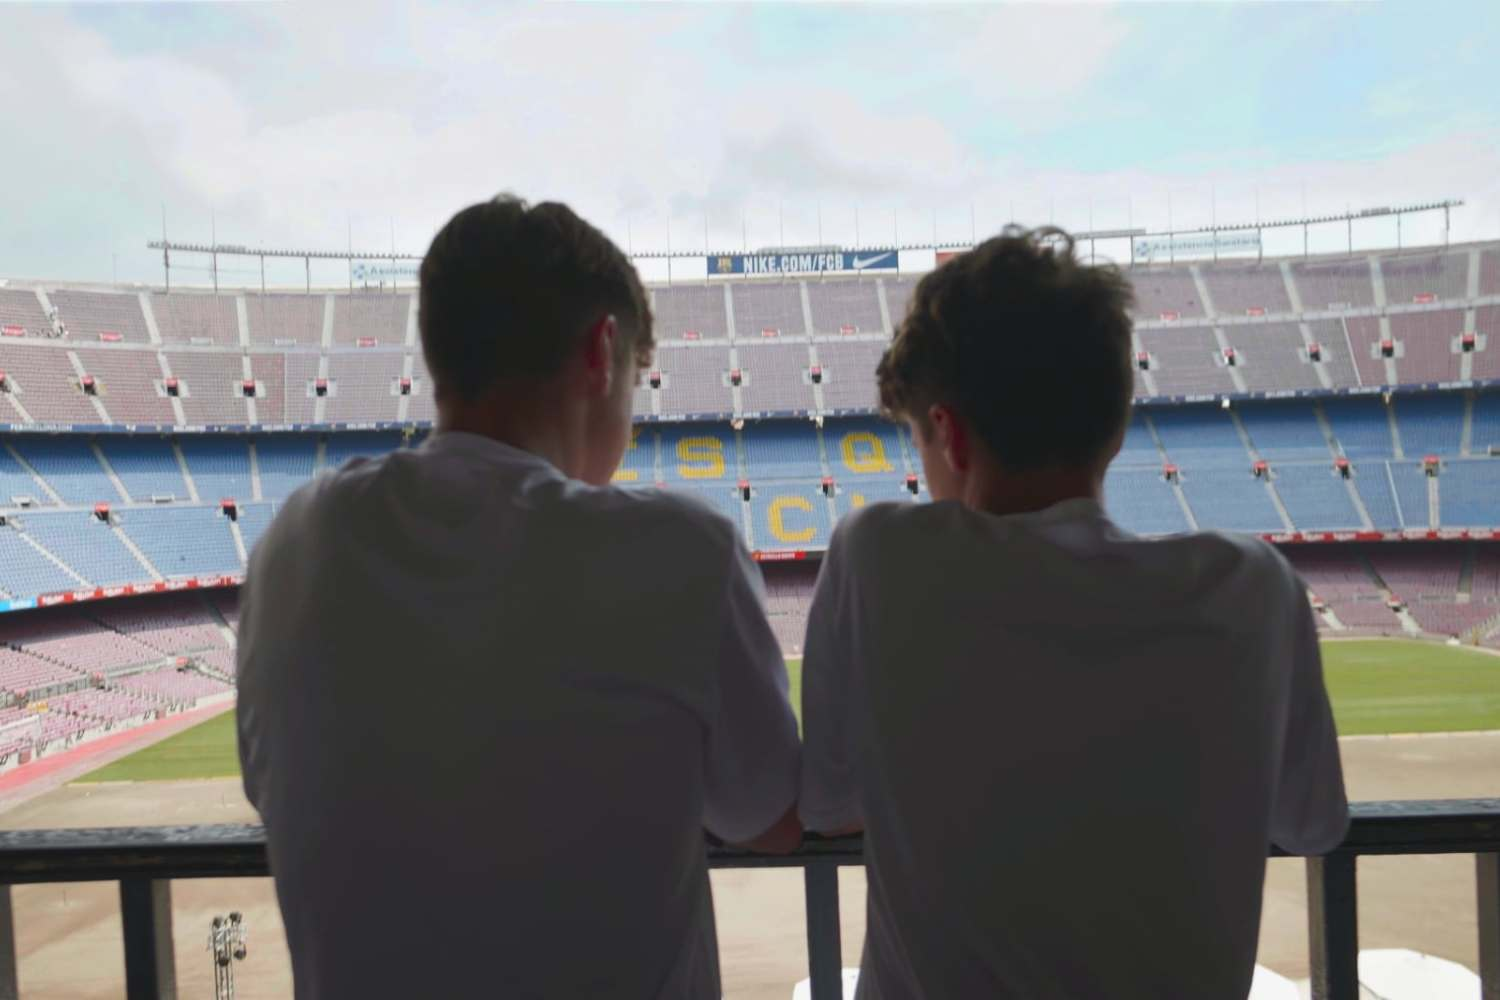 Witnessing Messi's home turf in Barcelona